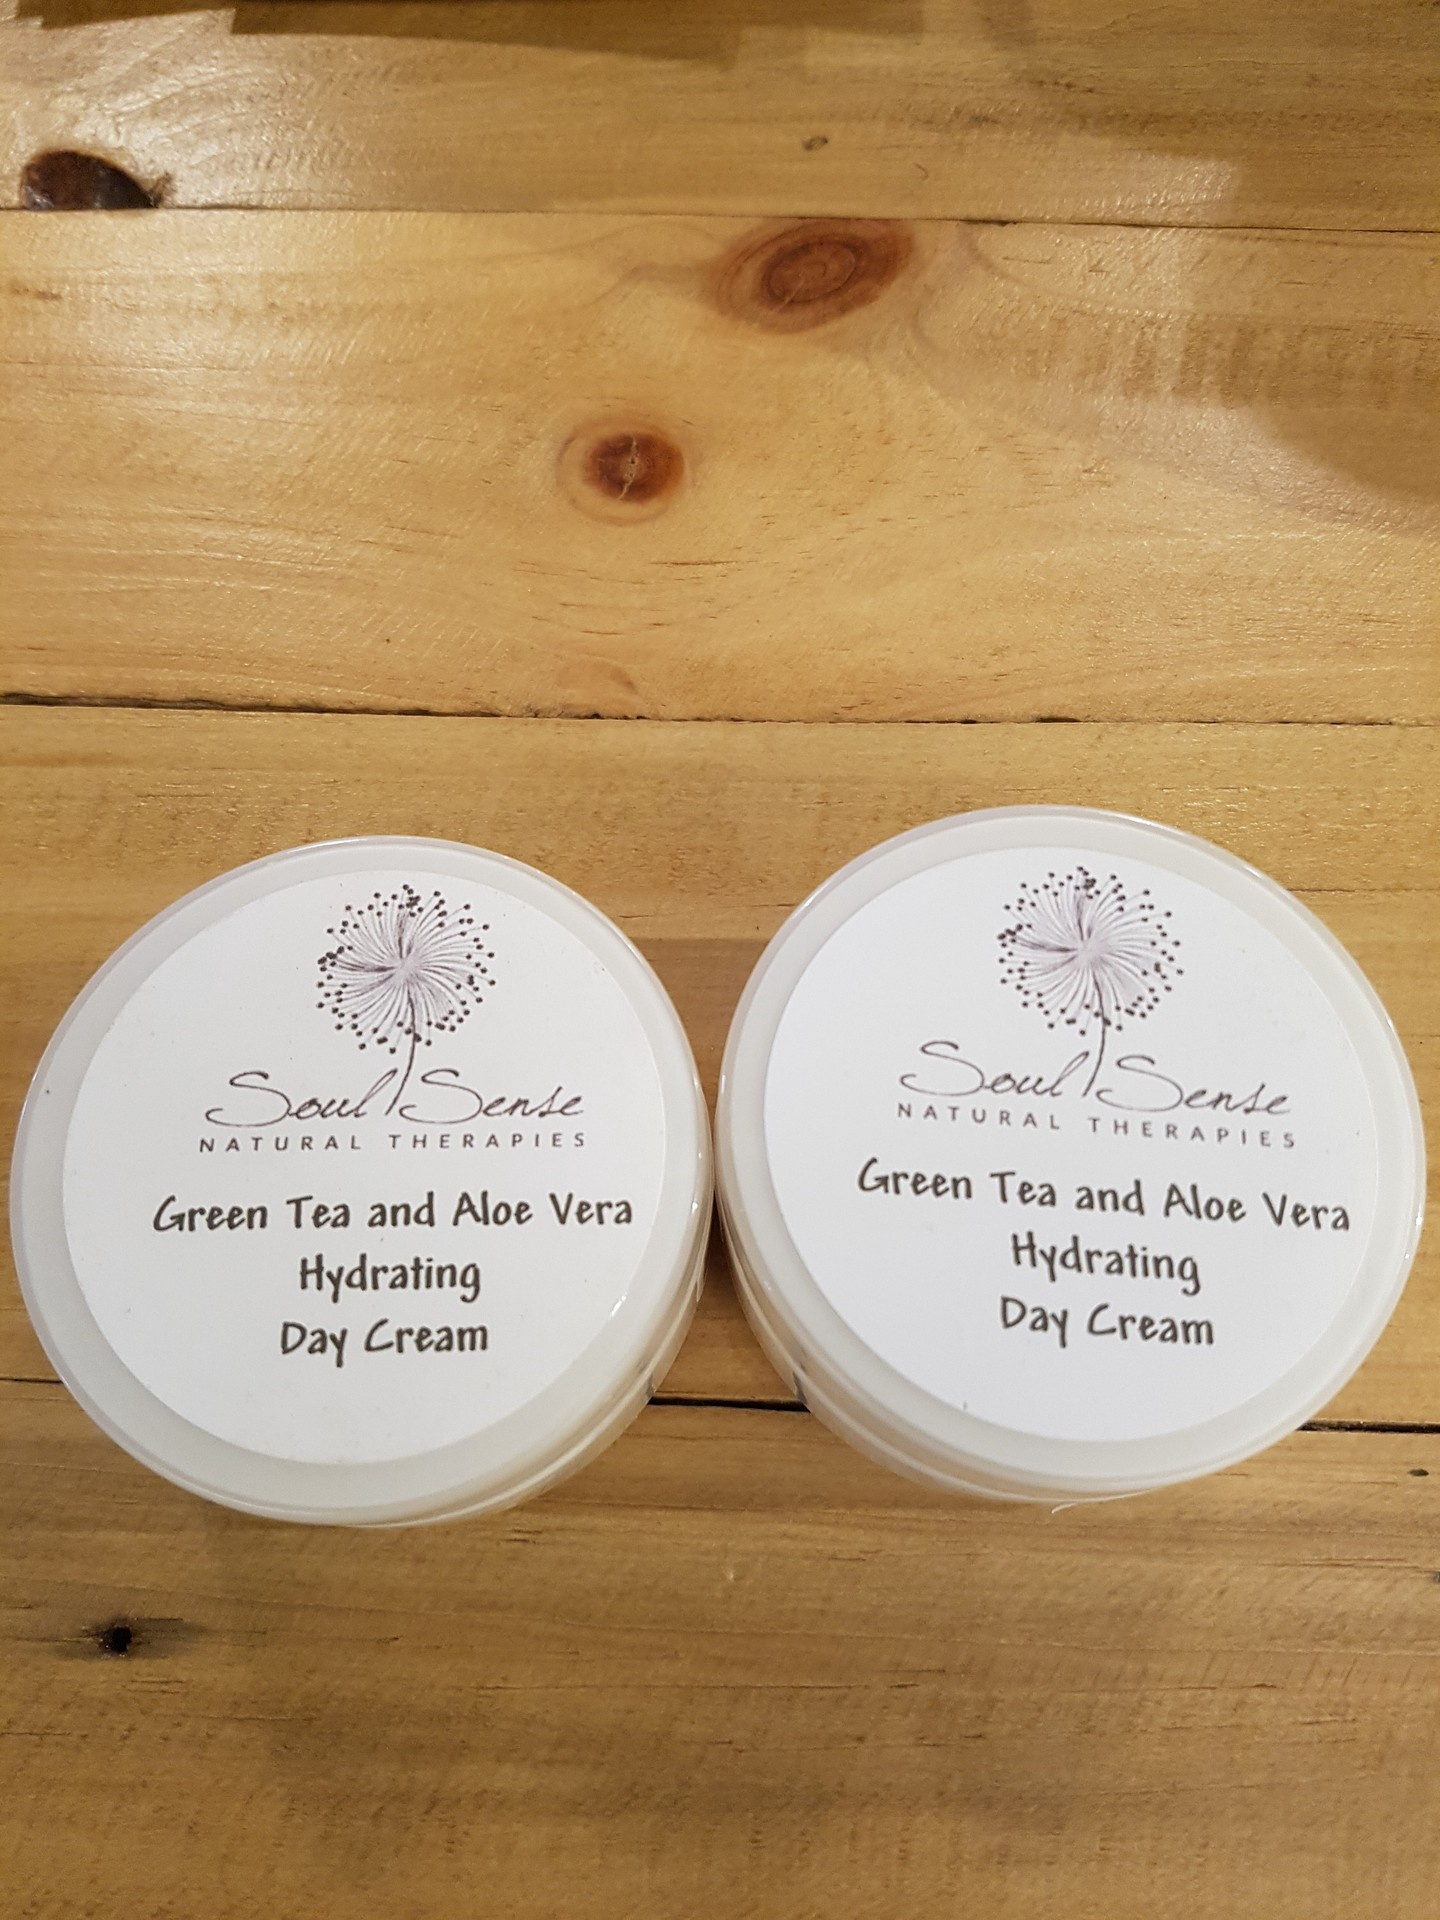 Green Tea and Aloe Vera Hydrating Day Cream